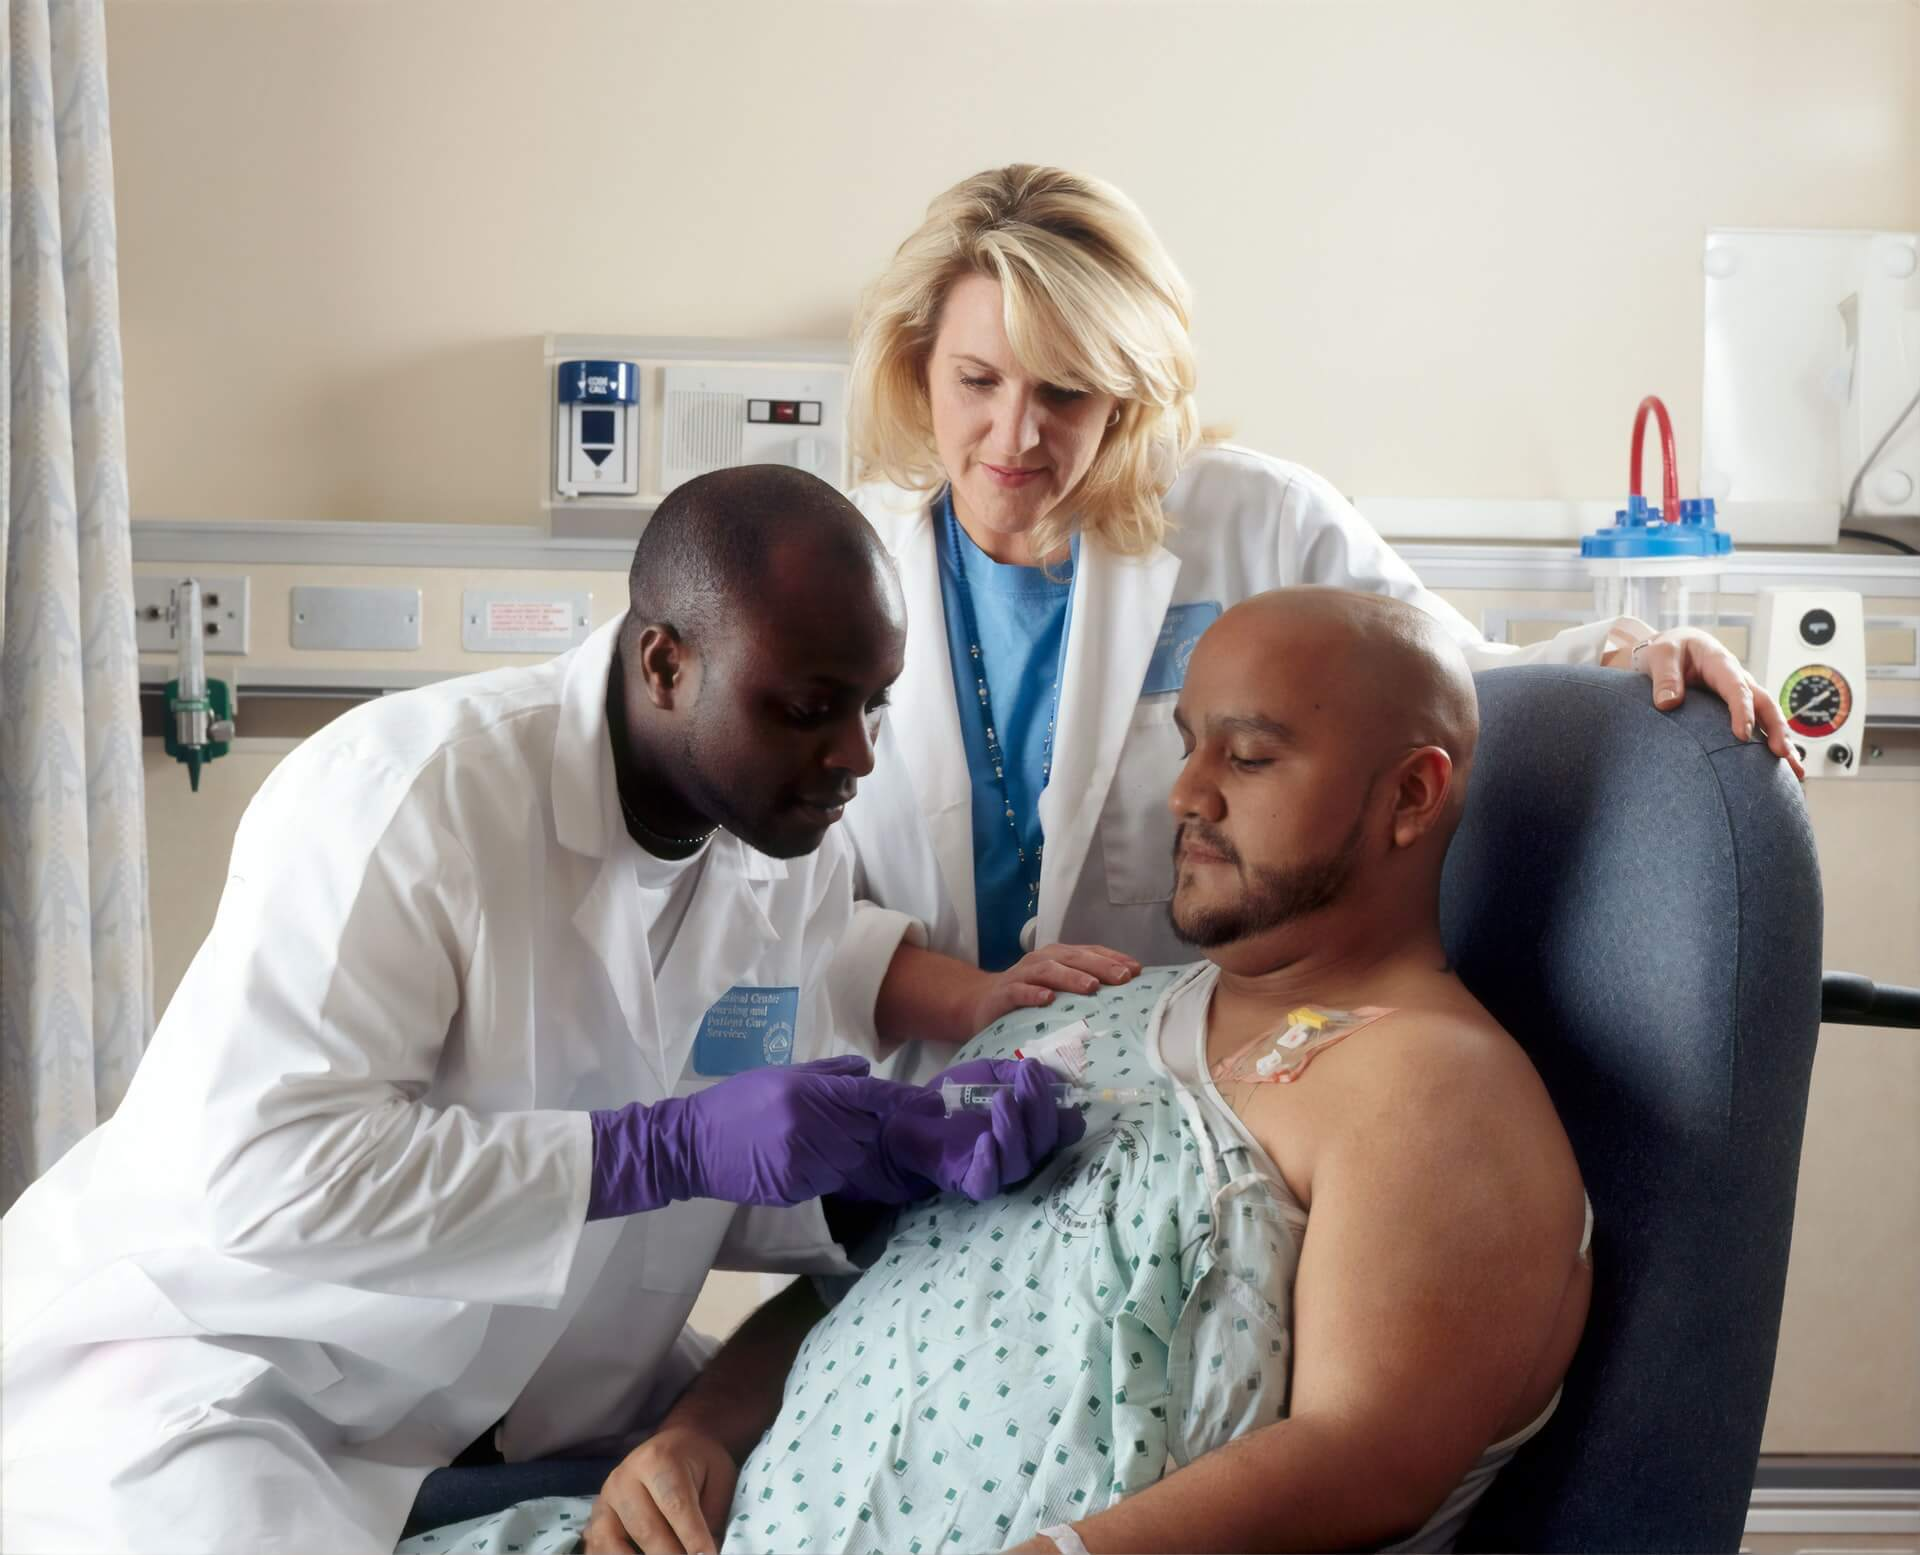 bald man being attended by two doctors in a hospital setting